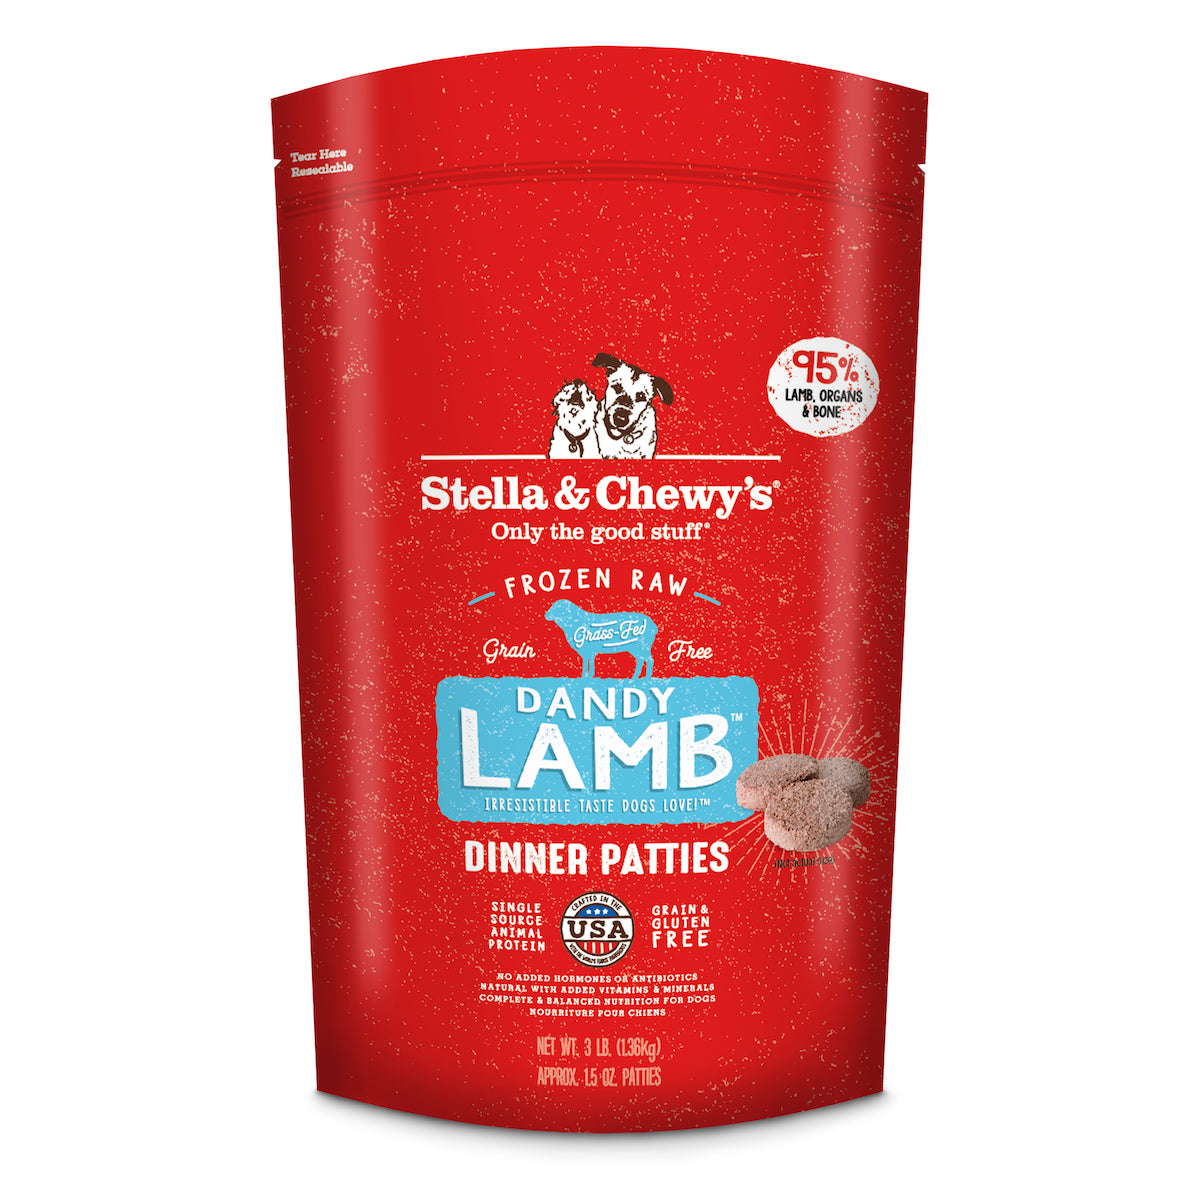 Stella & Chewy's Dog Frozen Raw Dandy Lamb Dinner Patties